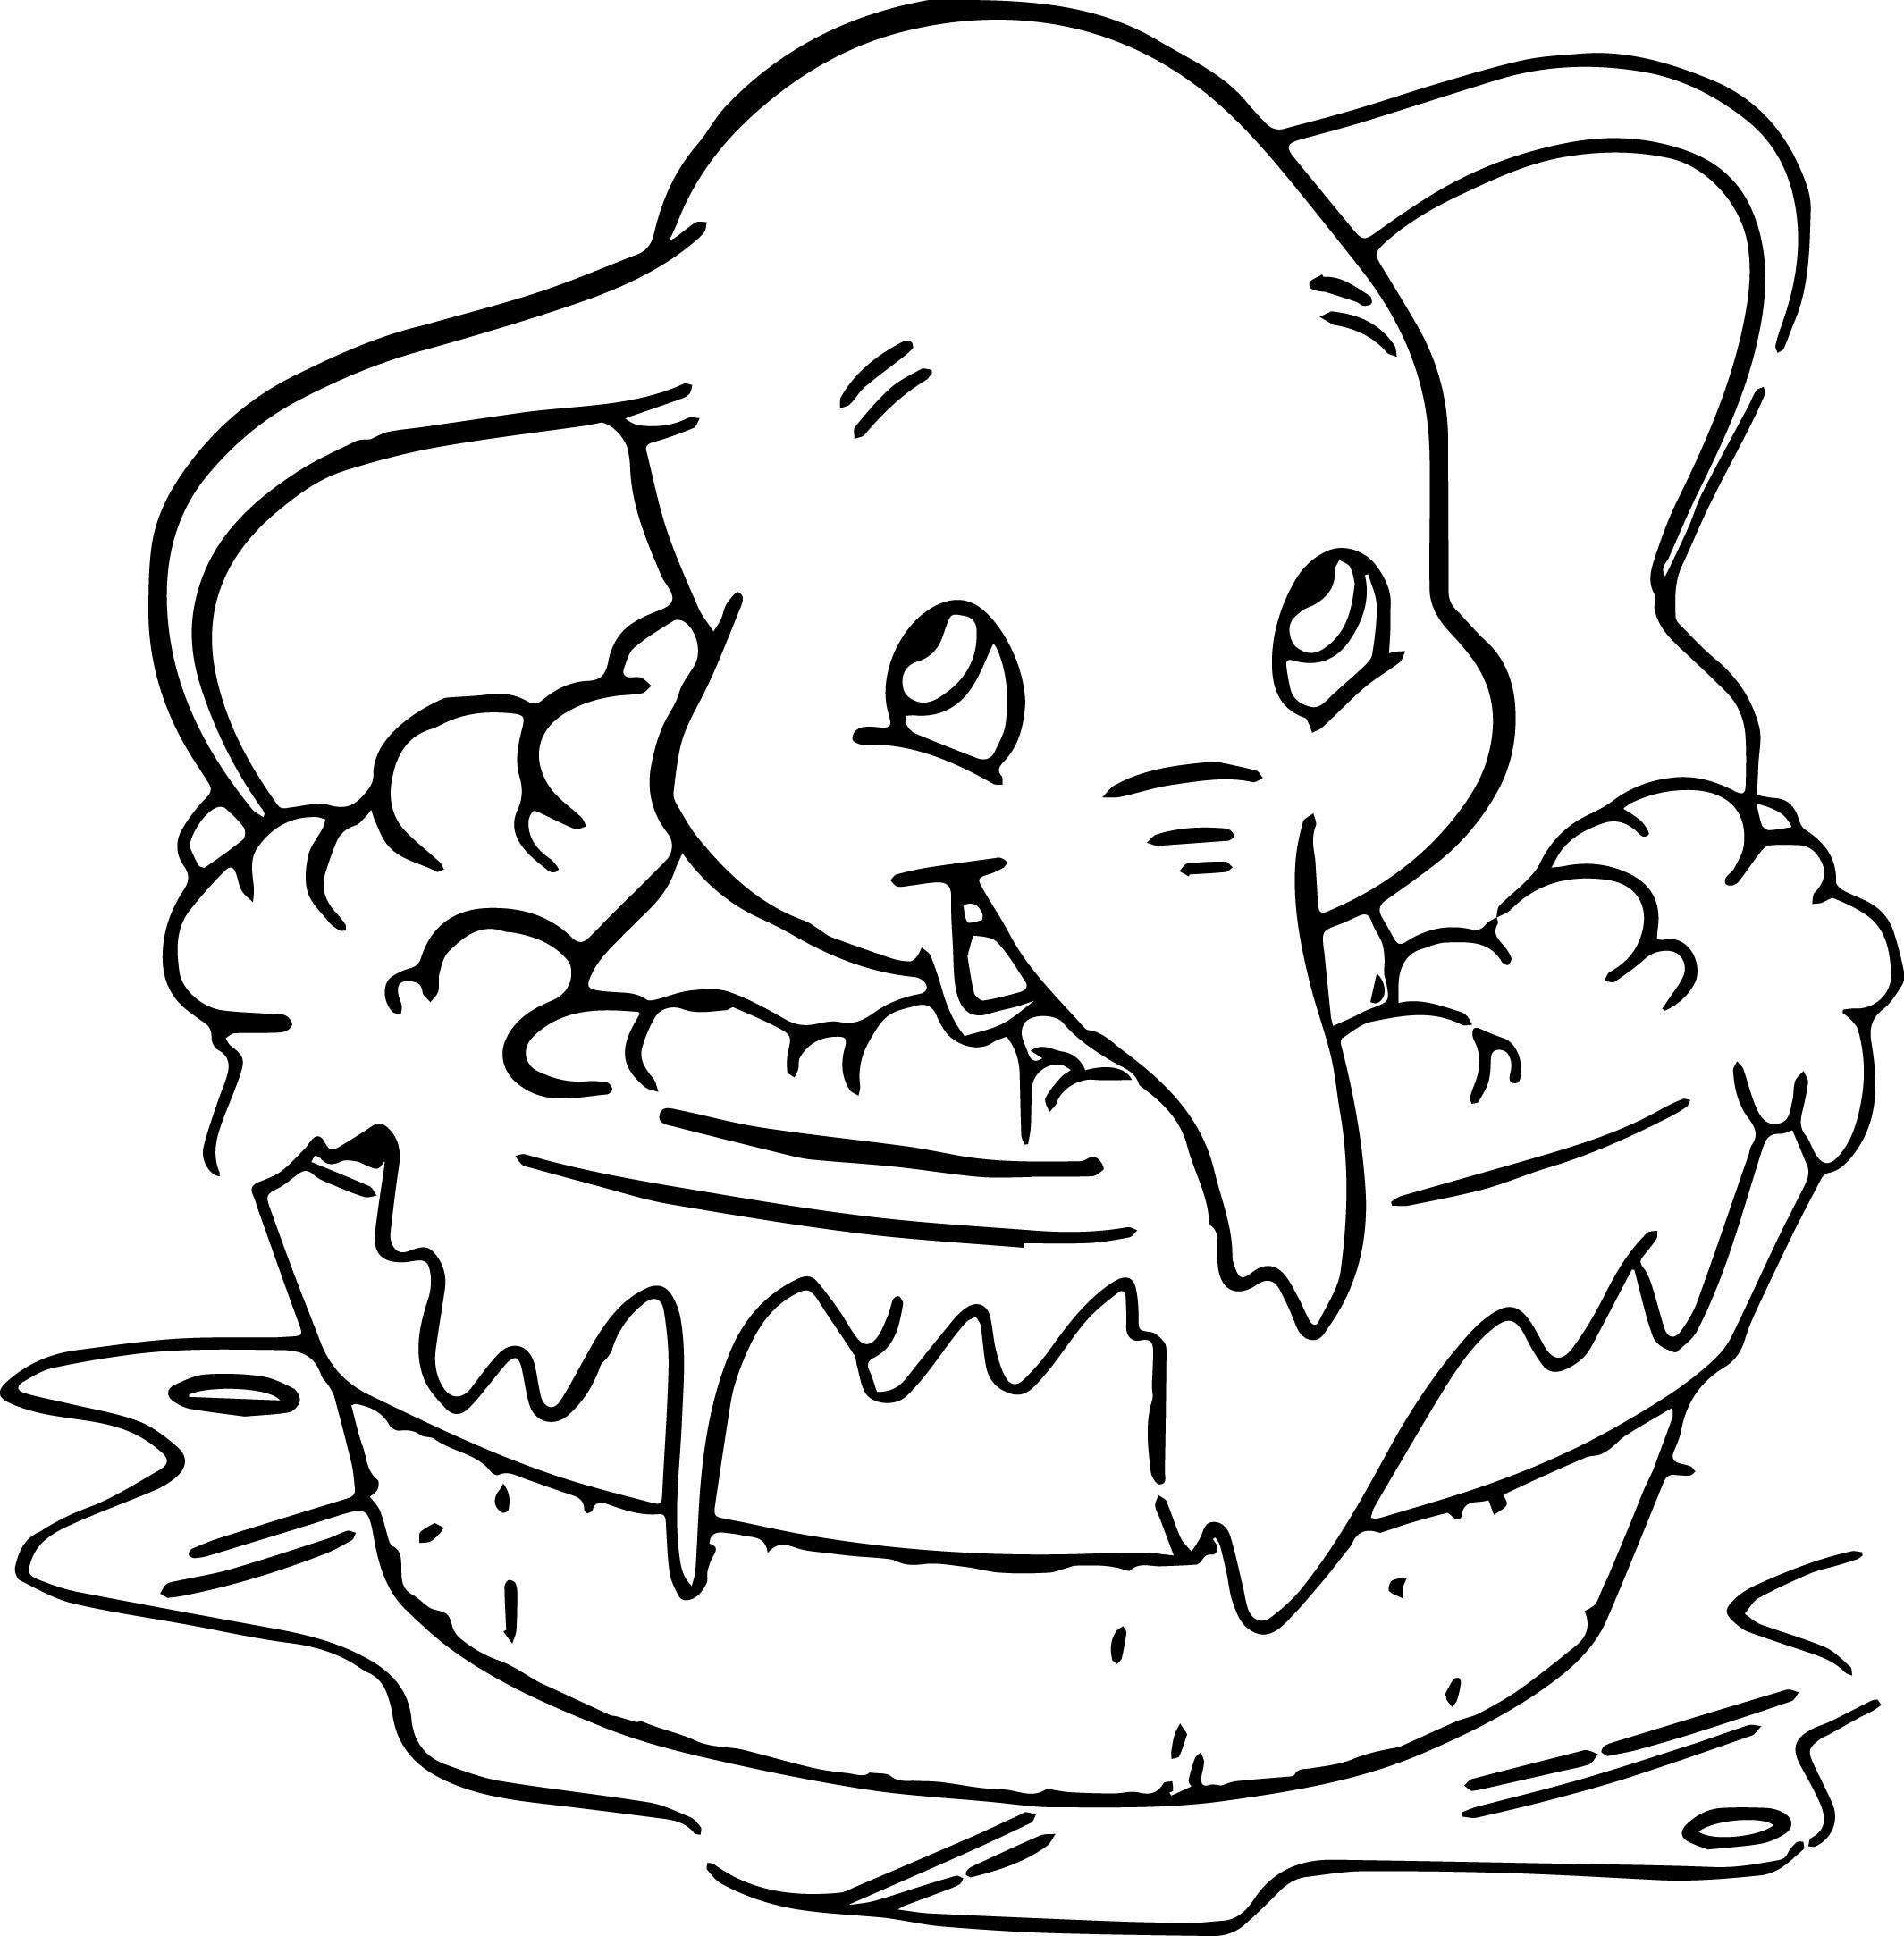 Disney Dumbo Elephant Coloring Pages Elephant Coloring Page Animal Coloring Pages Cartoon Coloring Pages